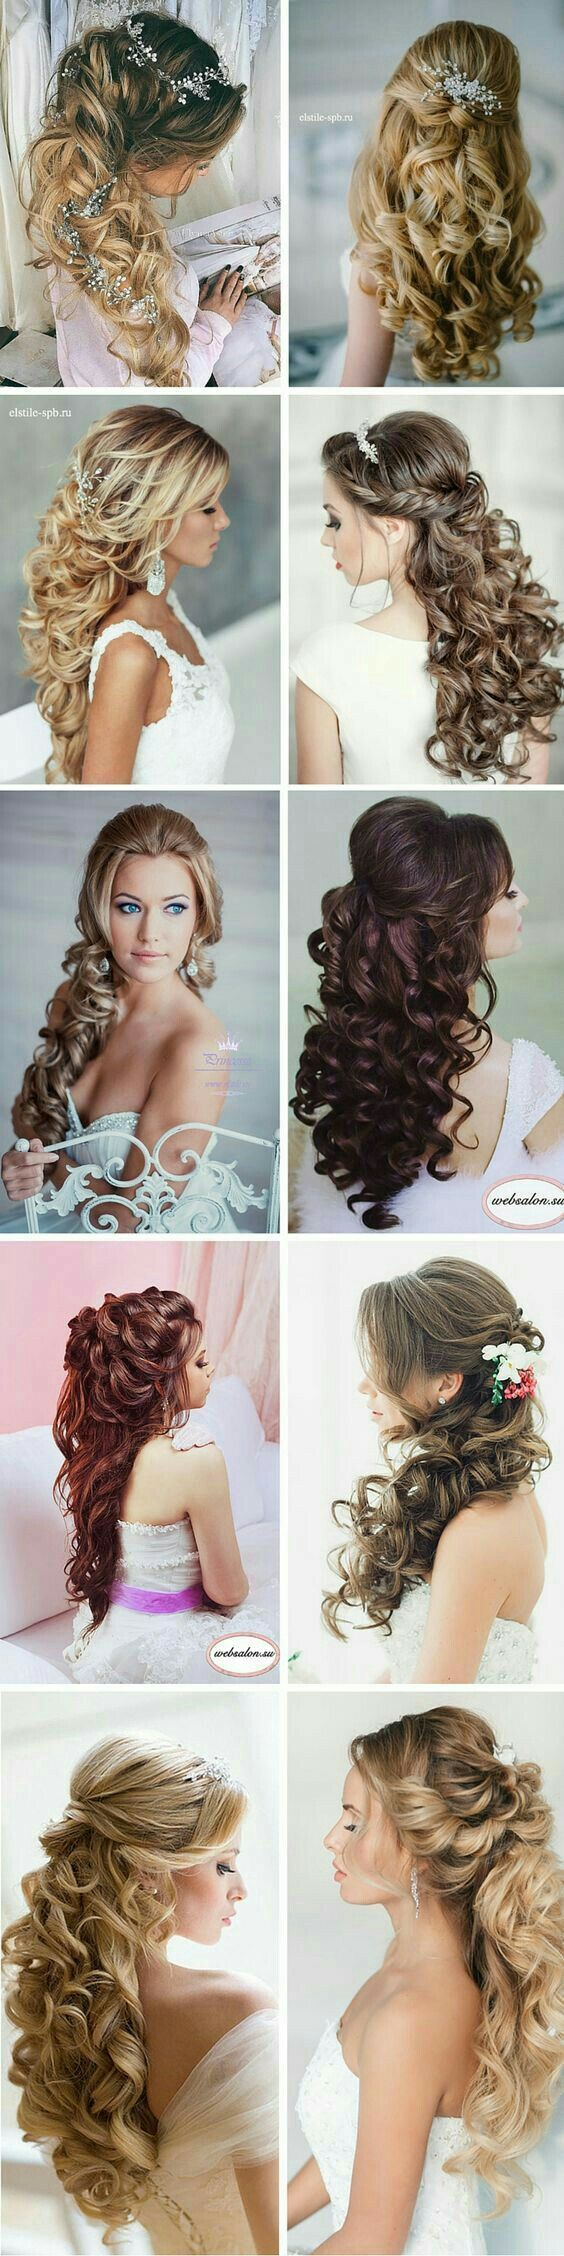 1000 Images About Coiffure Mariage On Pinterest Updo Wedding